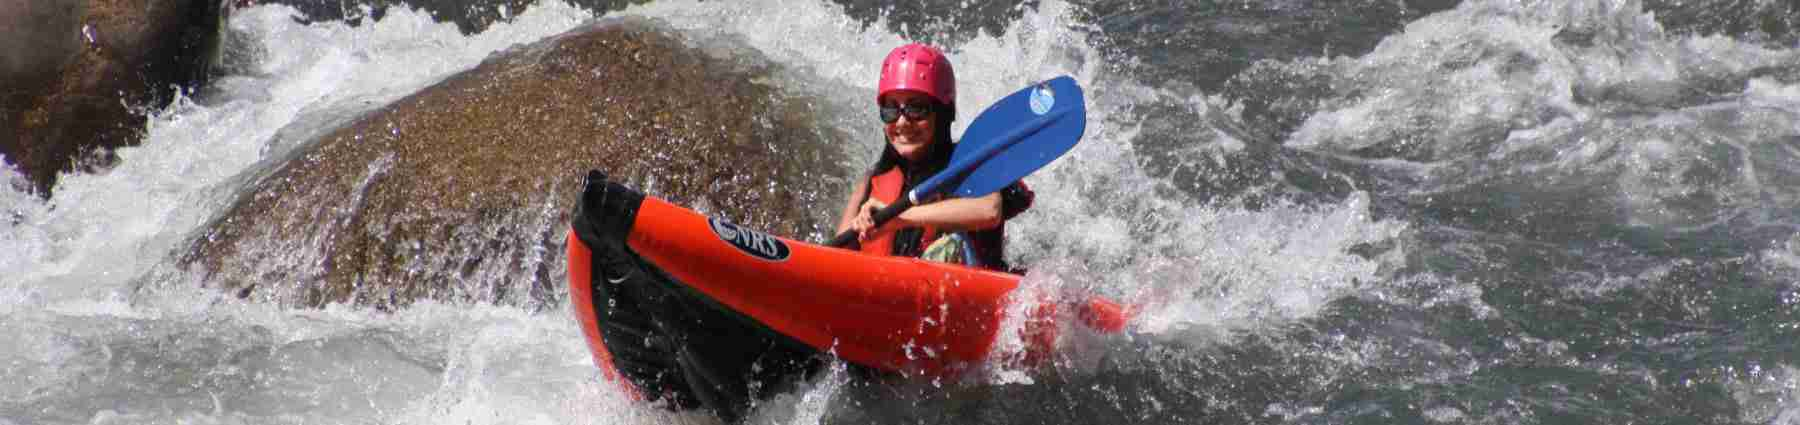 lady_on_kayak